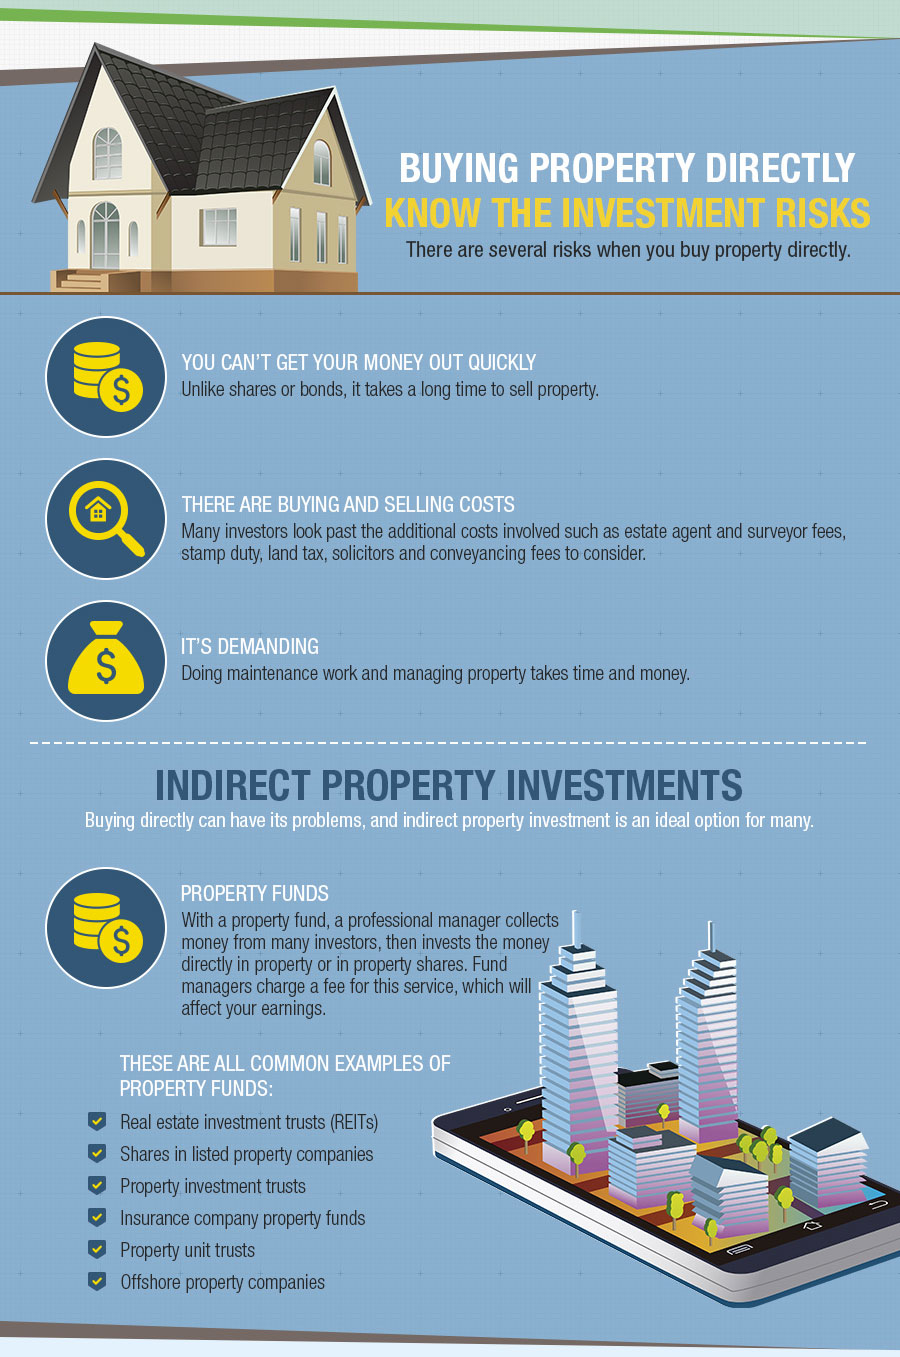 Buying property directly. Know the risks.